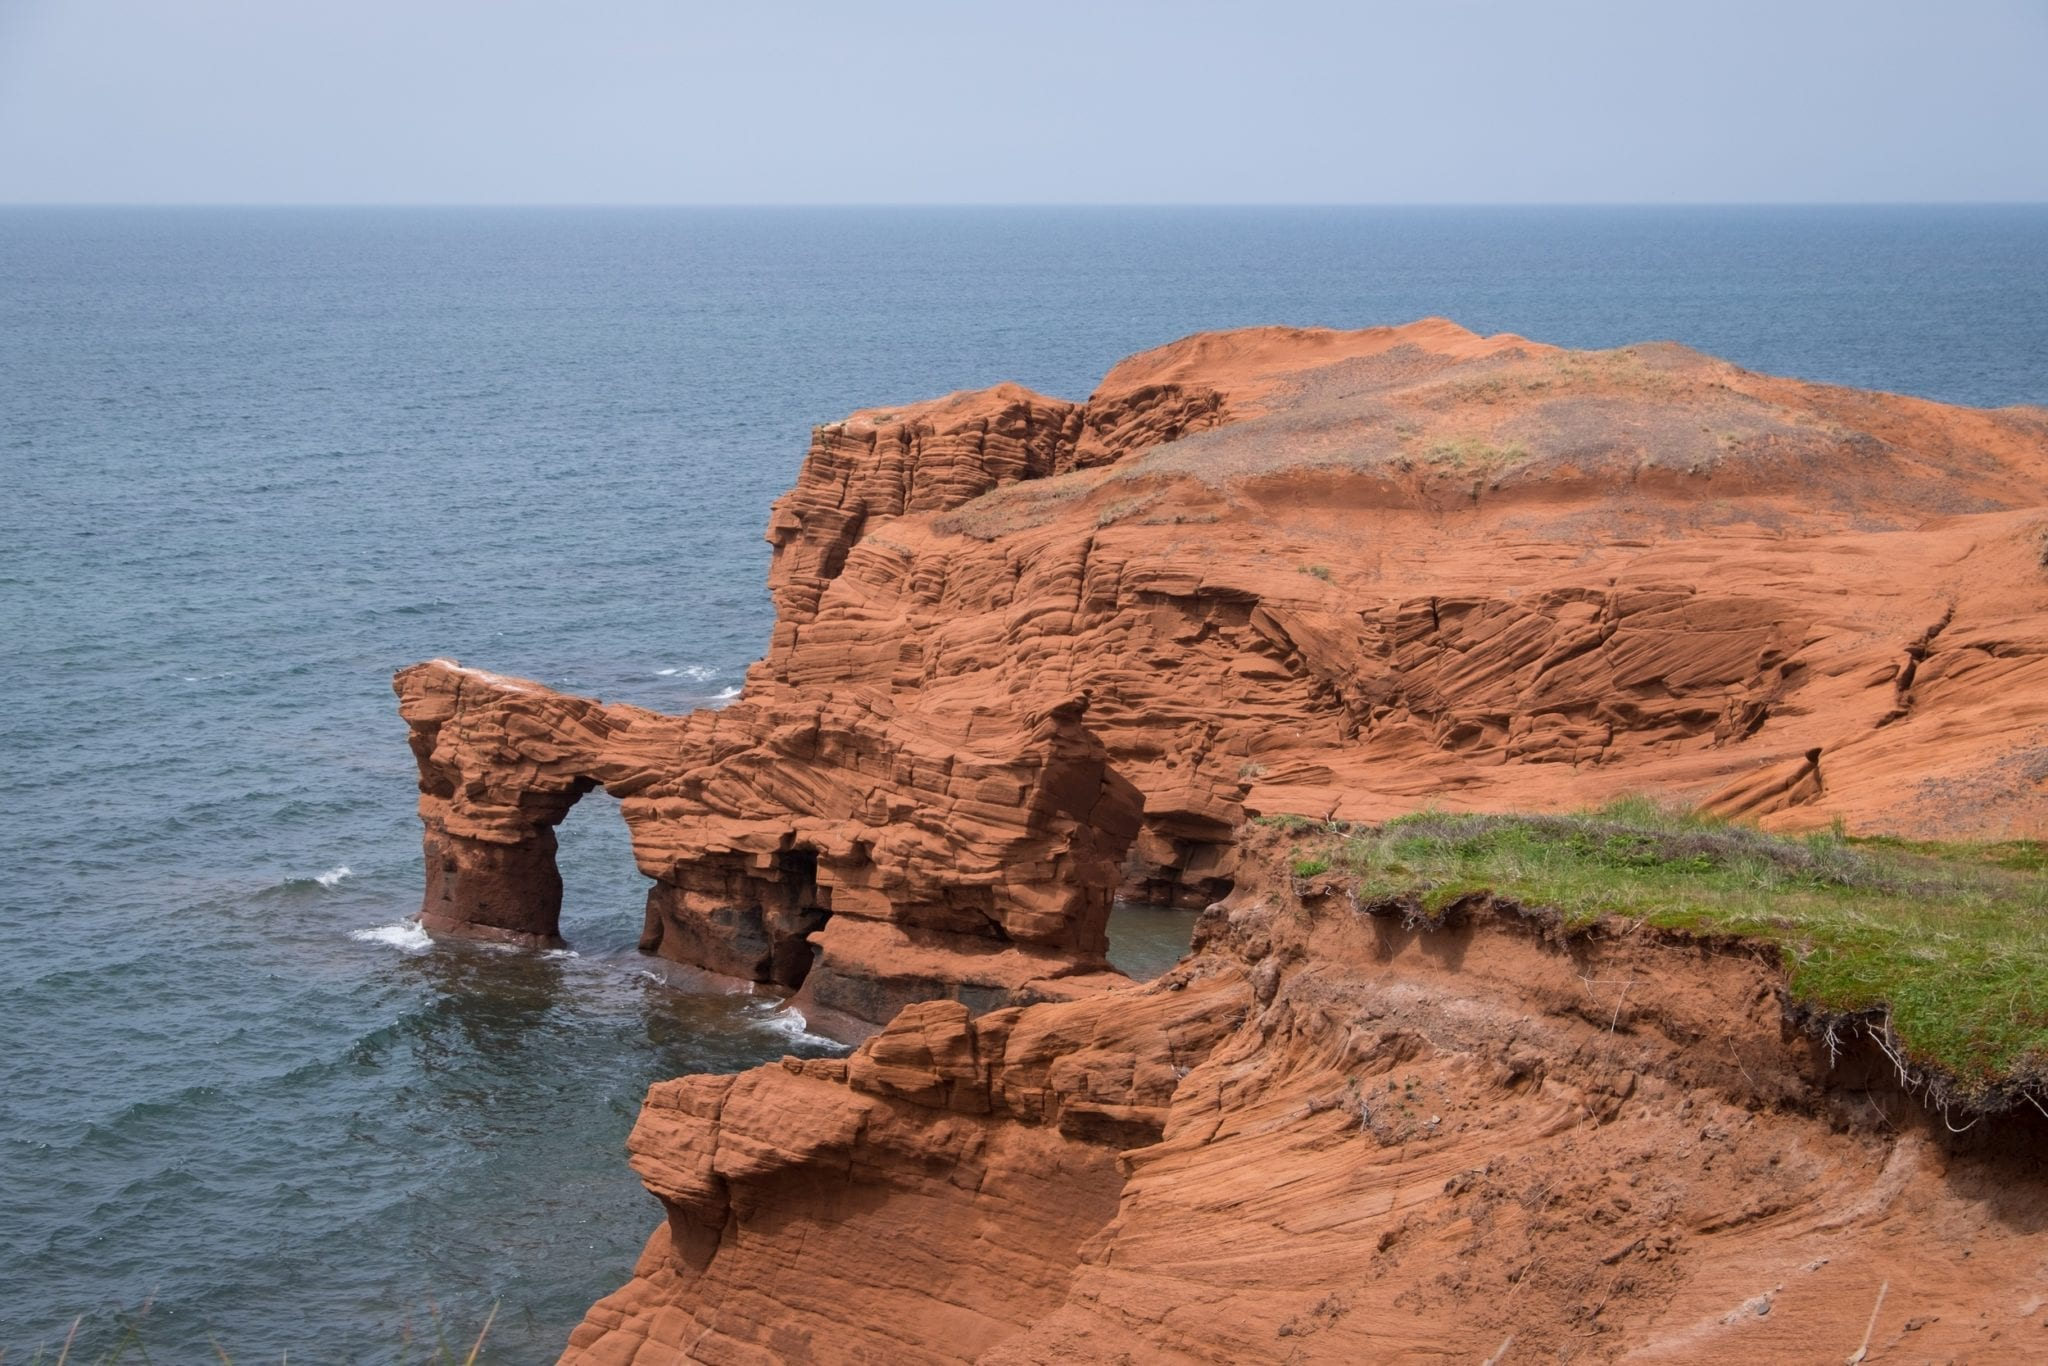 Bright red cliffs plunge into the sea on the Îles-de-la-Madeleine, Quebec.